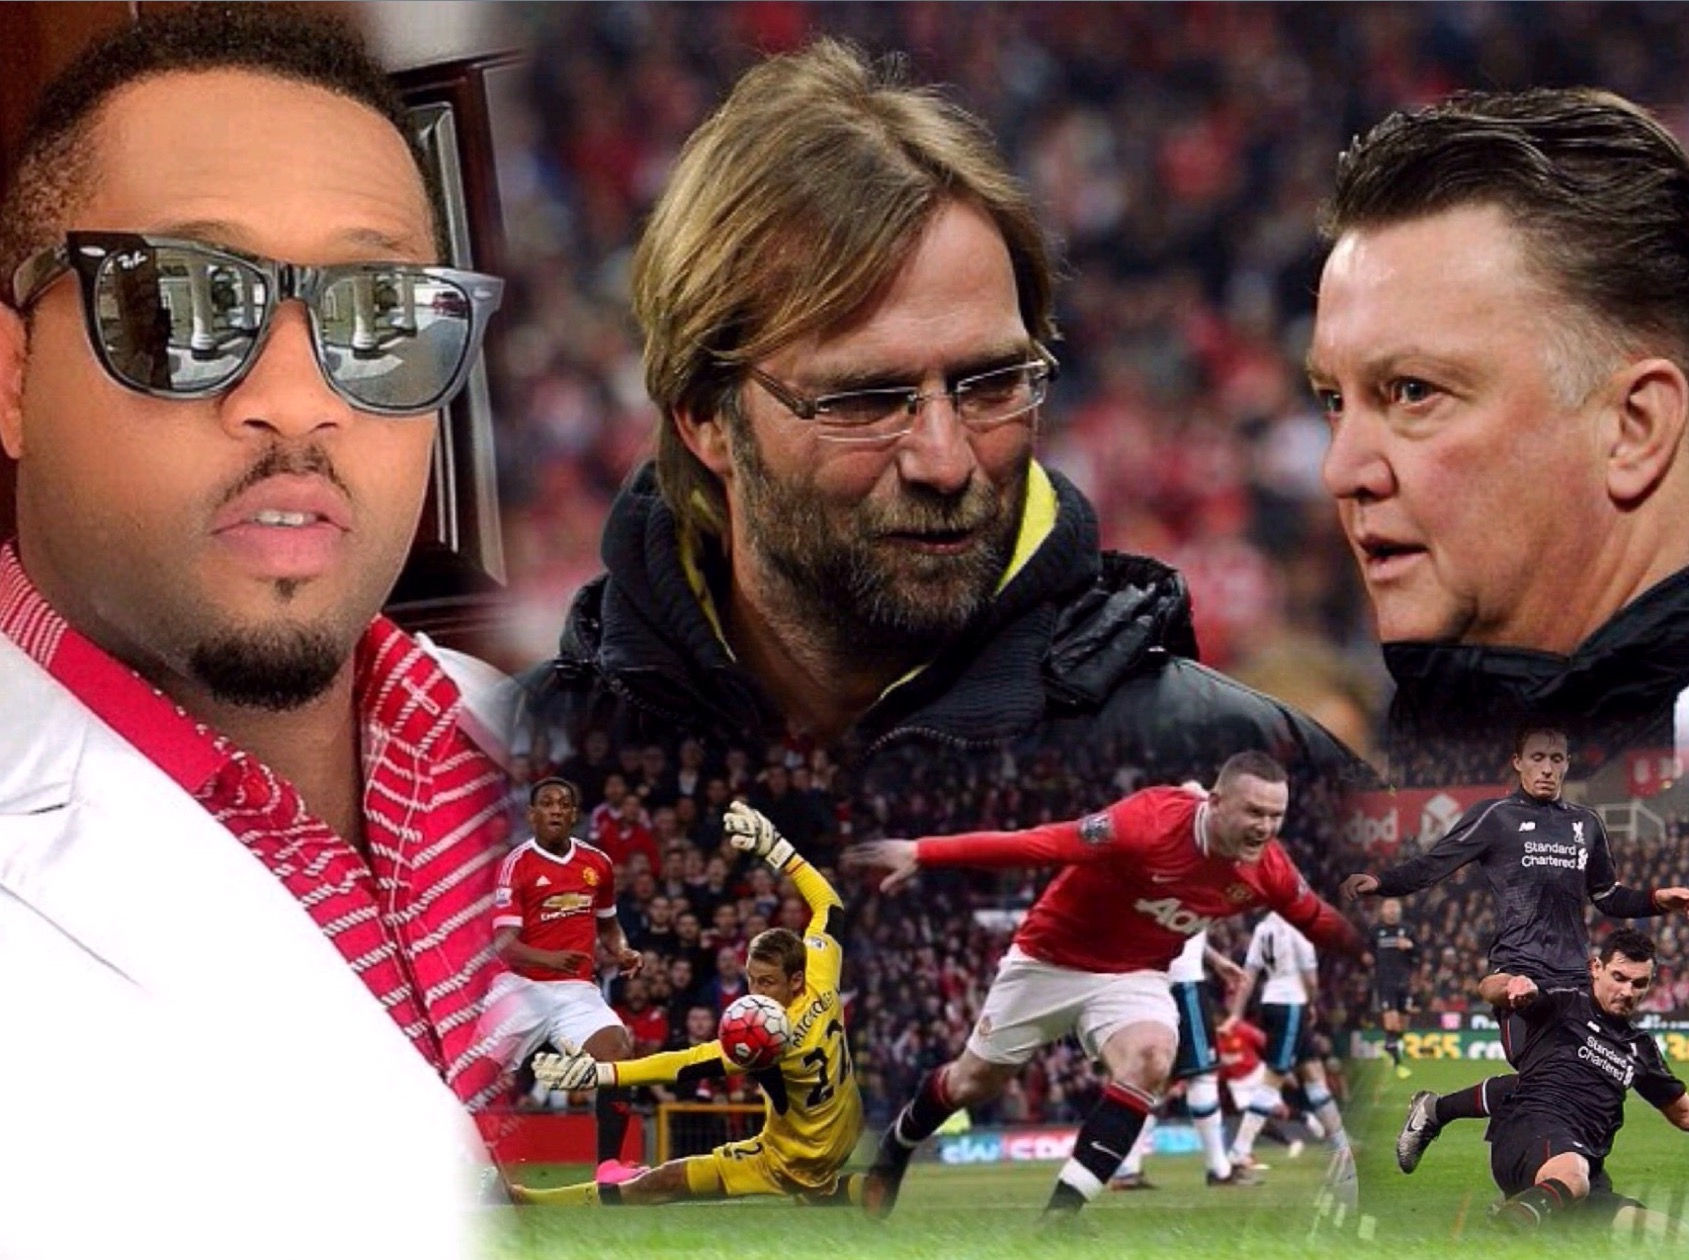 Super Sunday! Ezuruonye Expects Goal Harvest In Liverpool V Man United